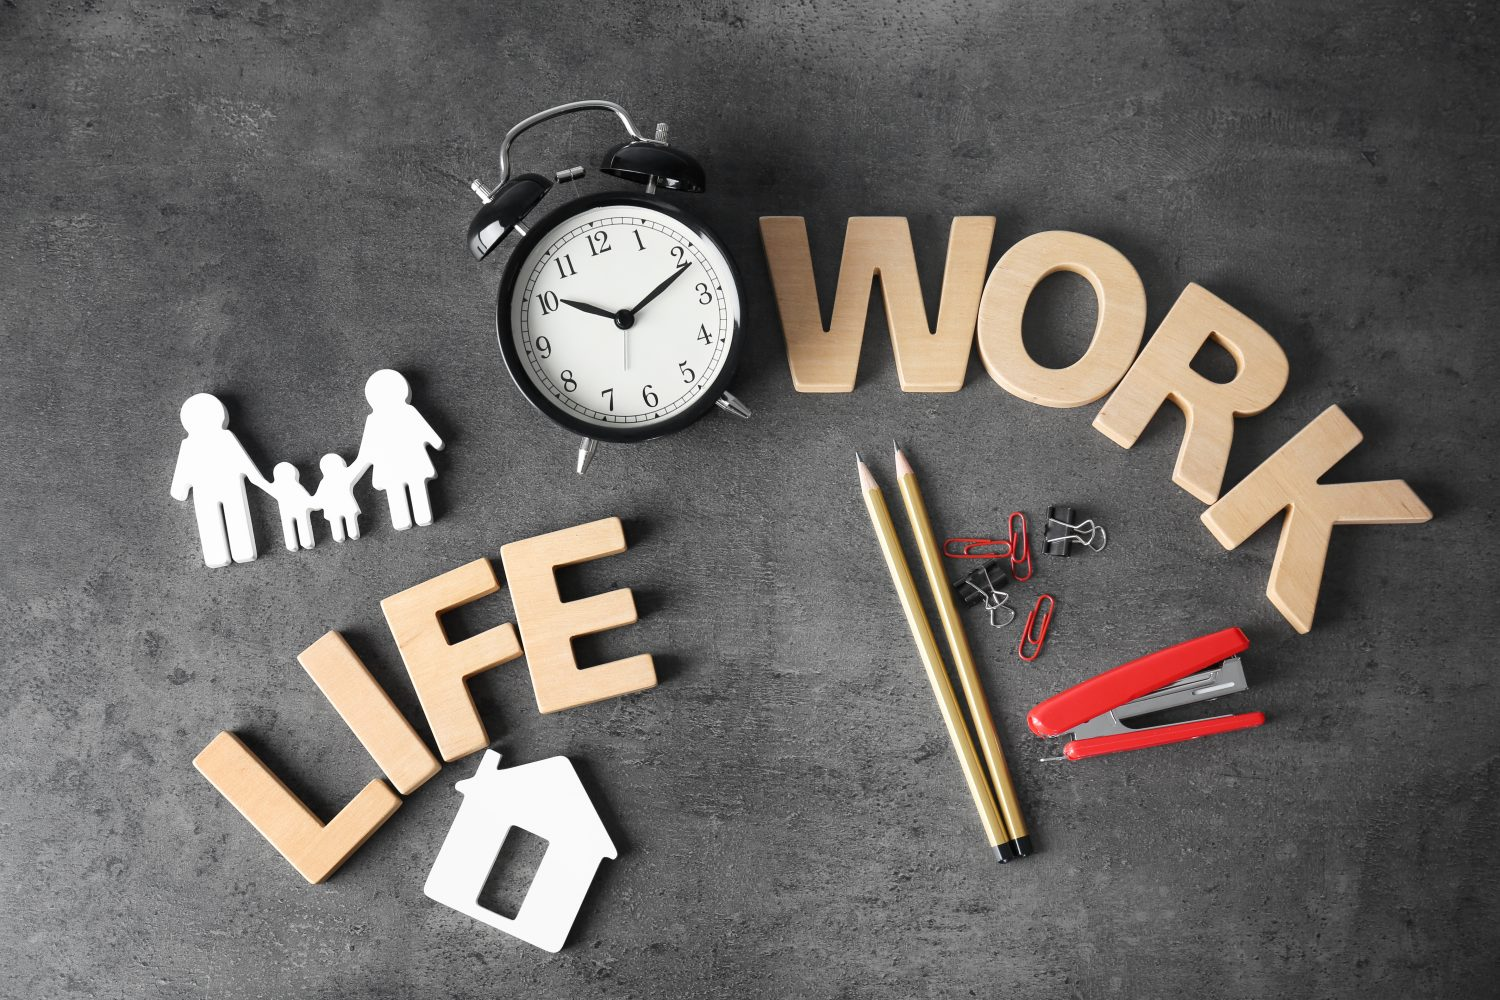 Tips for Improving Work/Life Balance